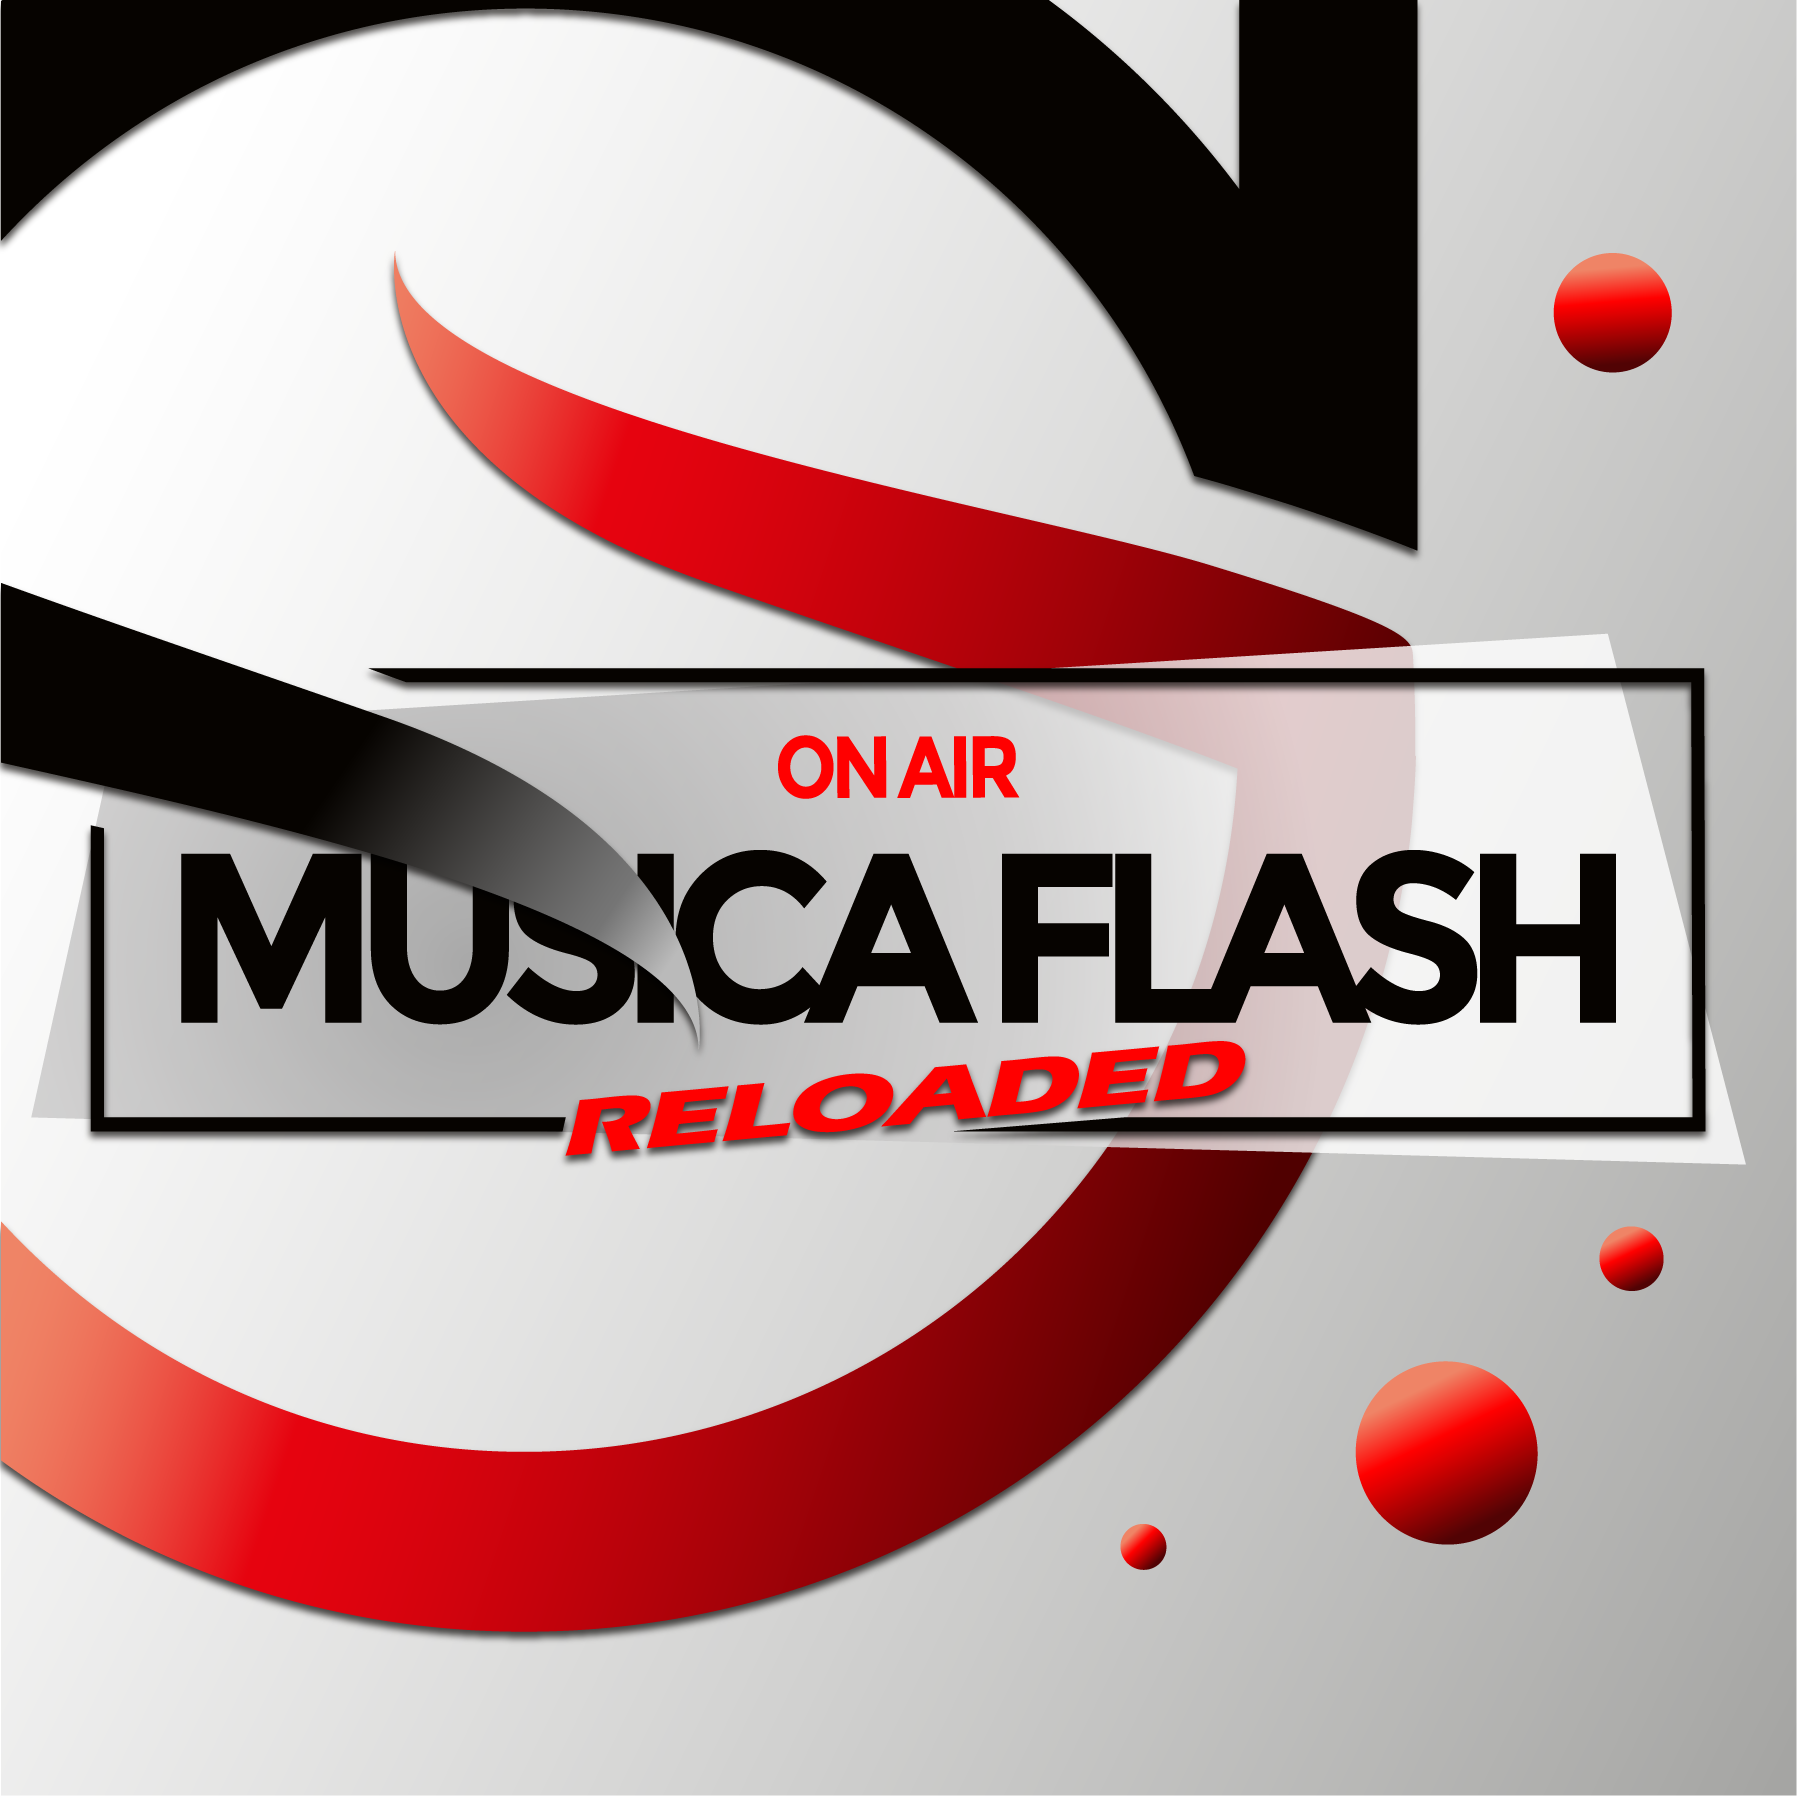 Musica Flash Reloaded